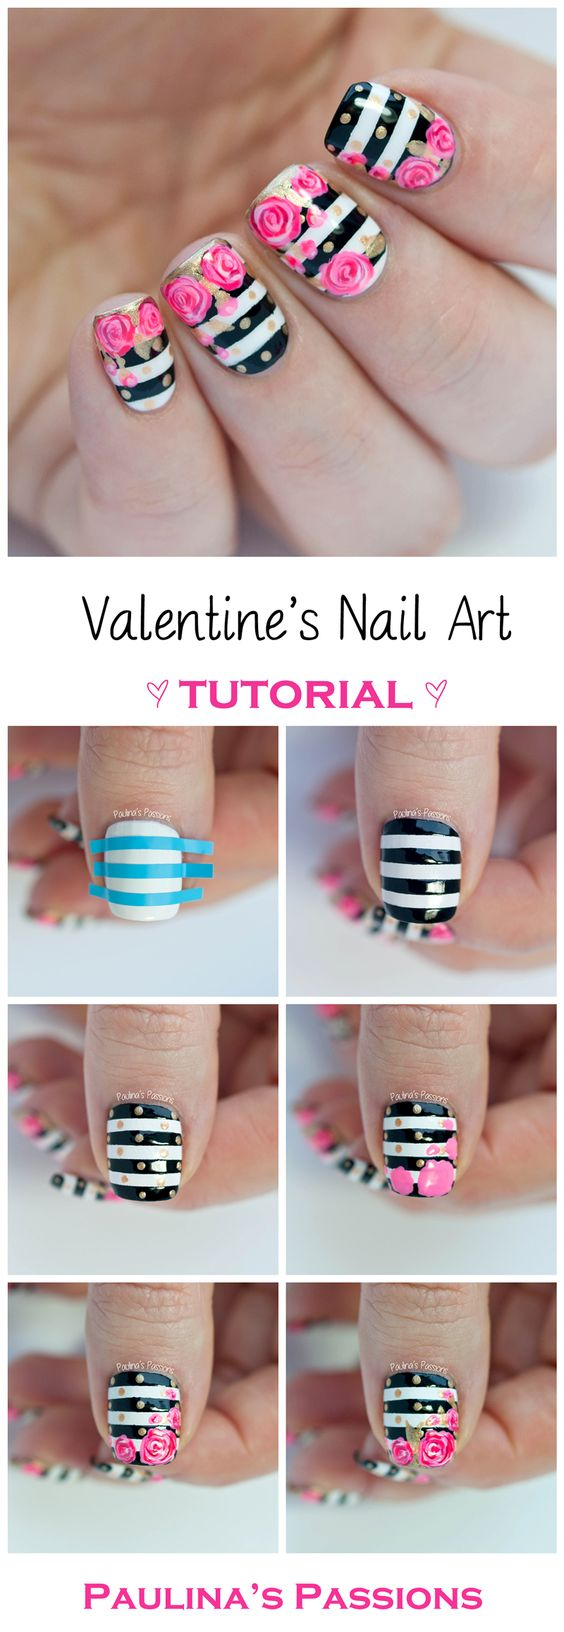 nail12 - 111 Nail Art Tutorials - Learn How To Do The Simple Ones To Intricate Details